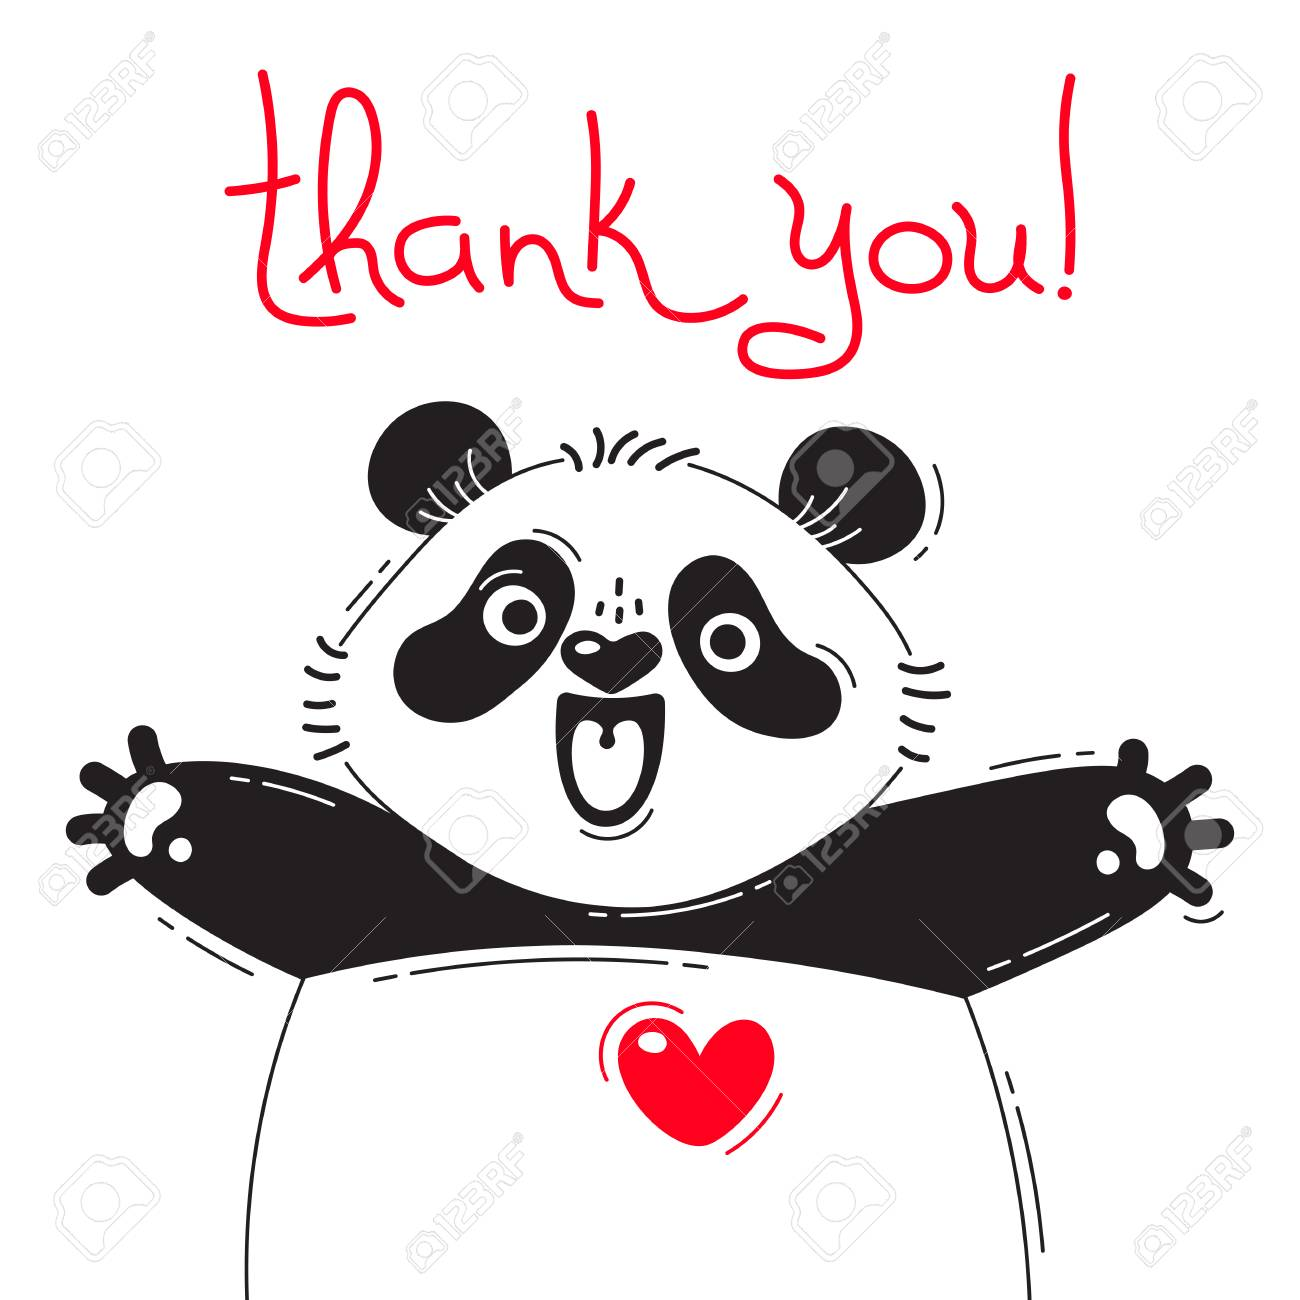 Illustration with joyful panda who says - thank you. For design of funny avatars, posters and cards. Cute animal. - 86736772